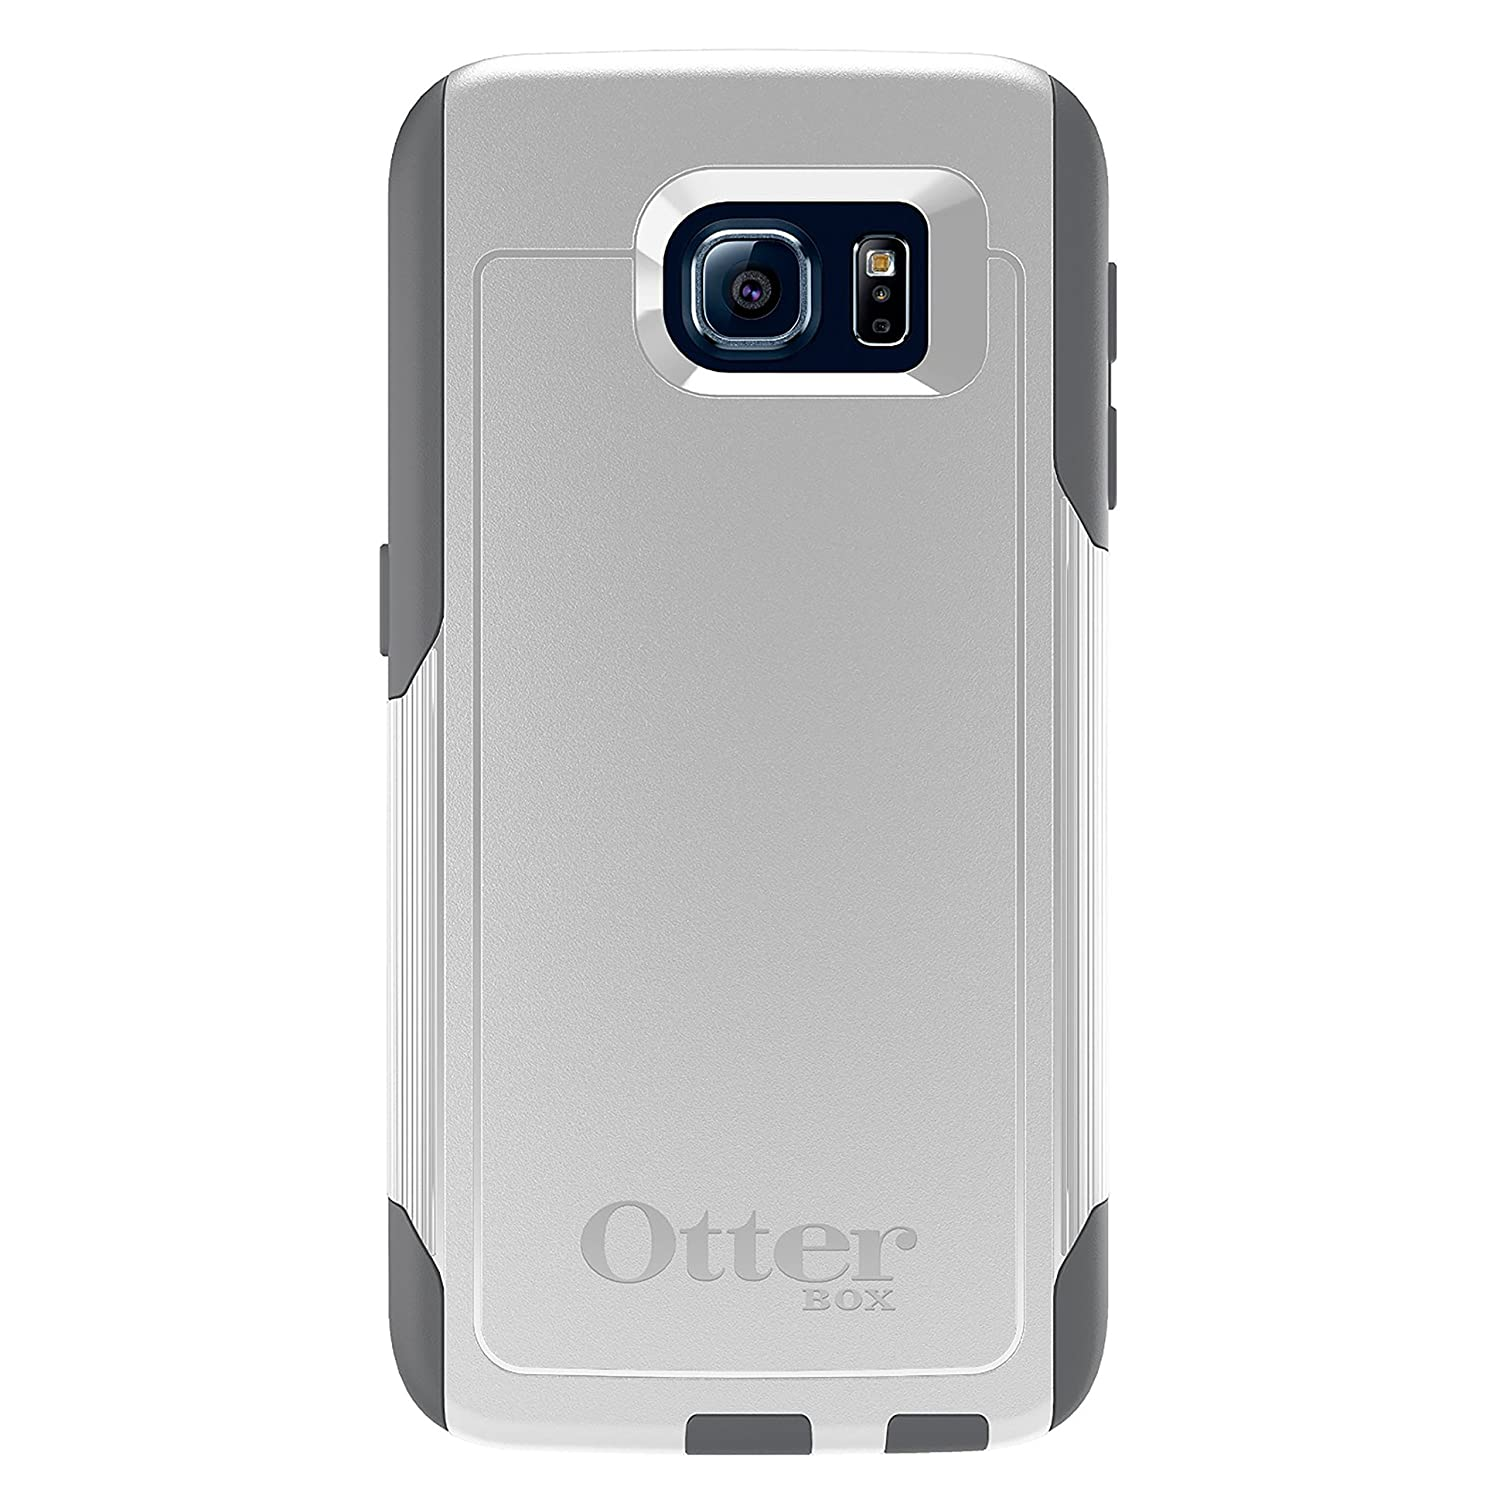 finest selection 128c5 02e87 OtterBox COMMUTER SERIES for Samsung Galaxy S6 - Retail Packaging - Glacier  (White/Gunmetal Grey)